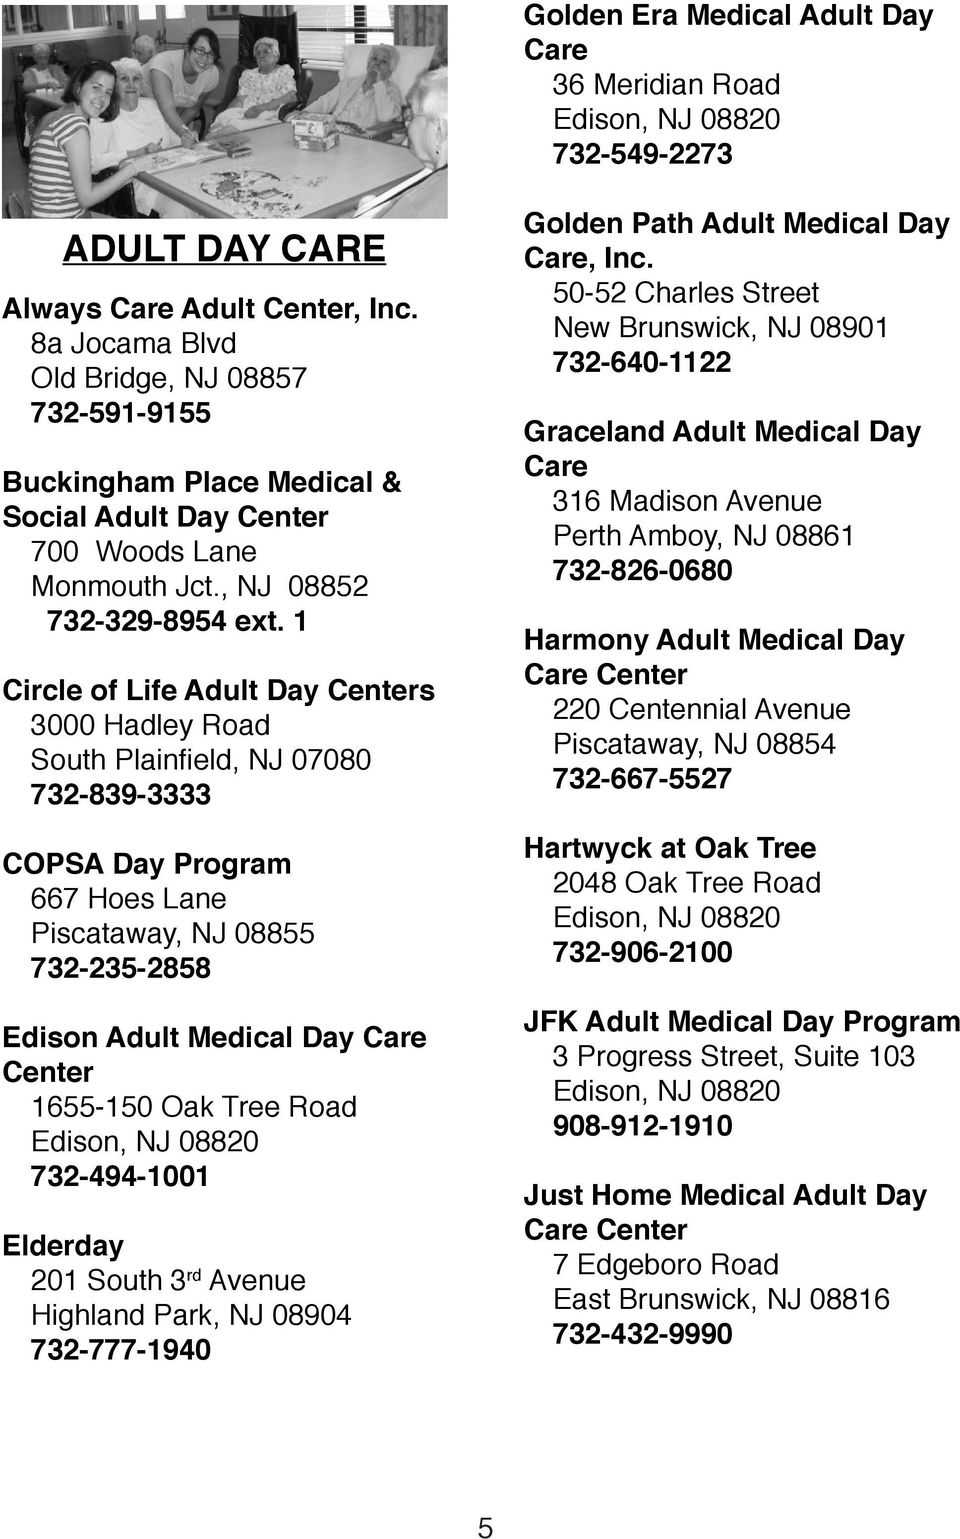 1 Circle of Life Adult Day Centers 3000 Hadley Road South Plainfield, NJ 07080 732-839-3333 COPSA Day Program 667 Hoes Lane Piscataway, NJ 08855 732-235-2858 Edison Adult Medical Day Care Center